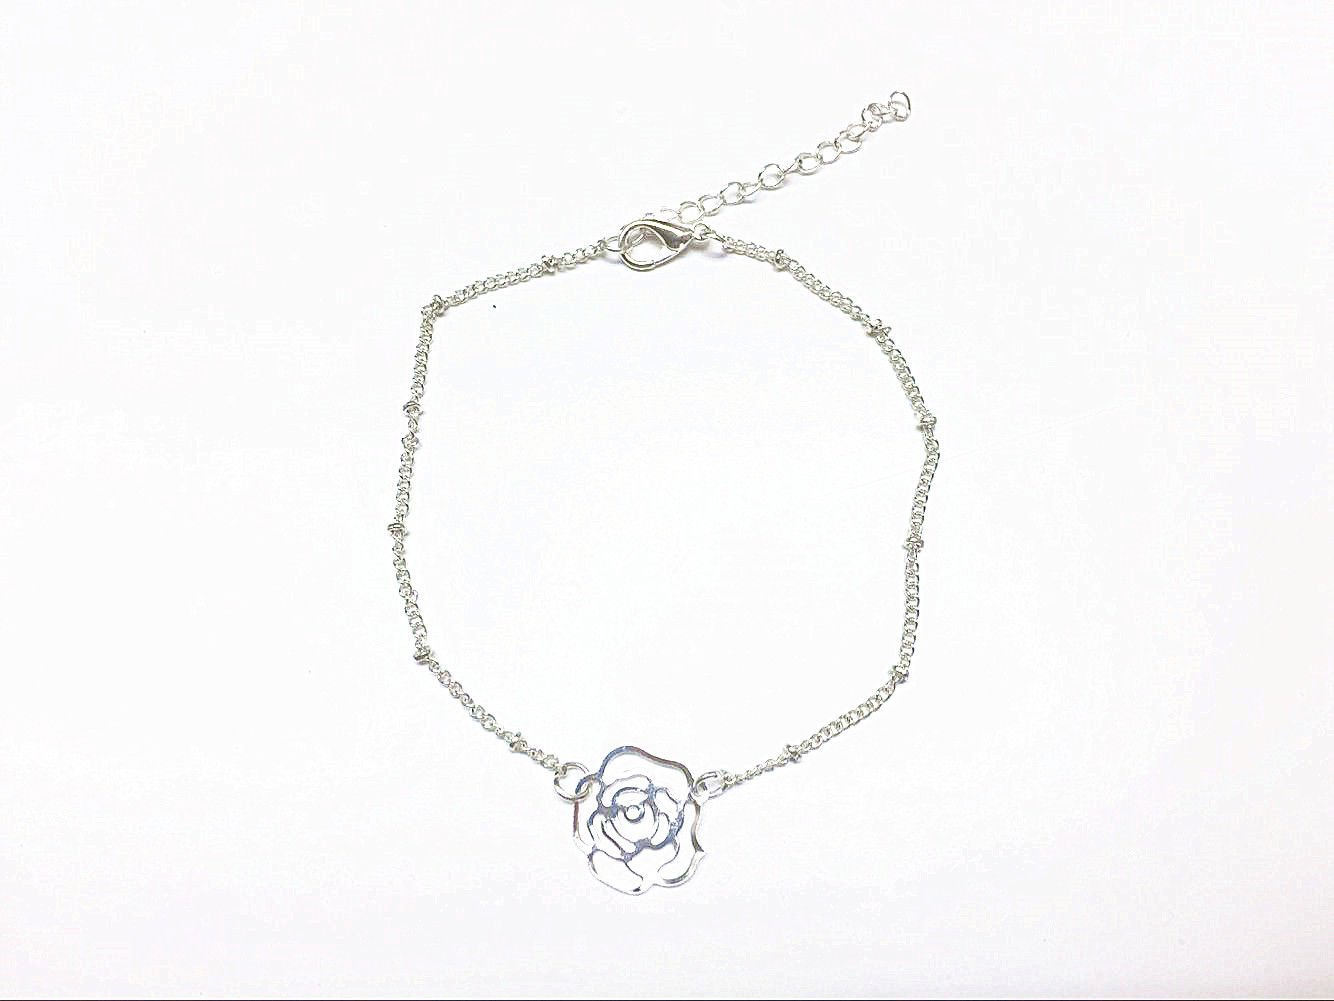 Women Silver Plated Rose Flower Anklet Chain Ankle Bracelet Anklets Foot Jewelry